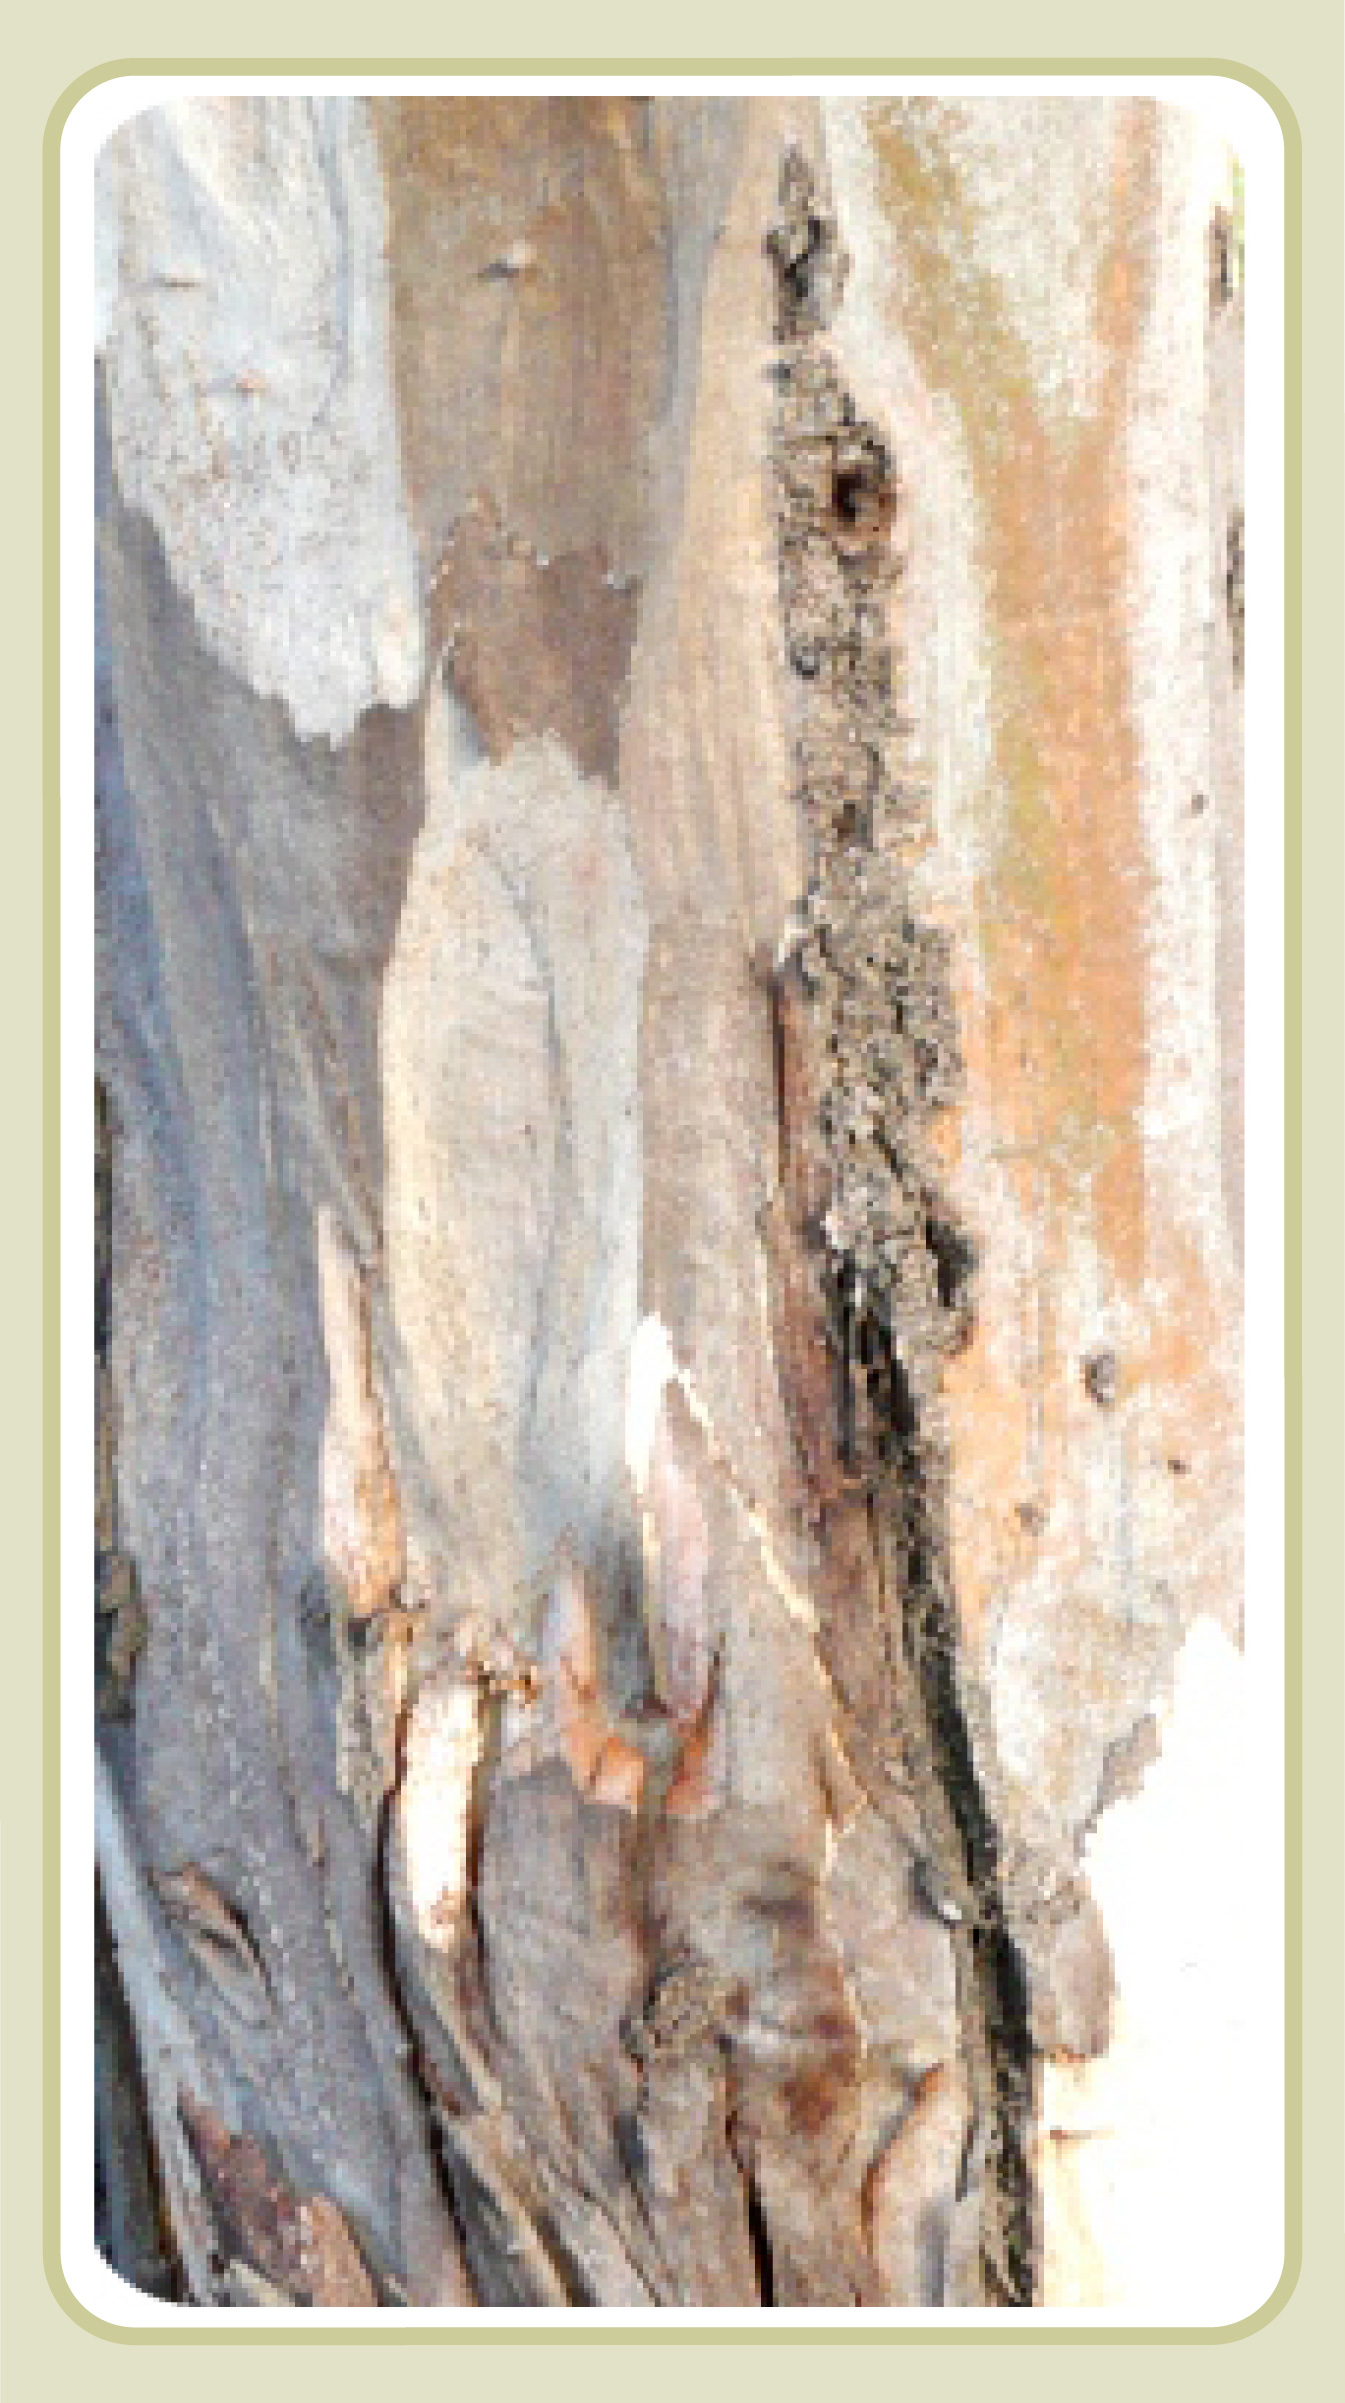 Blakely's red gum bark